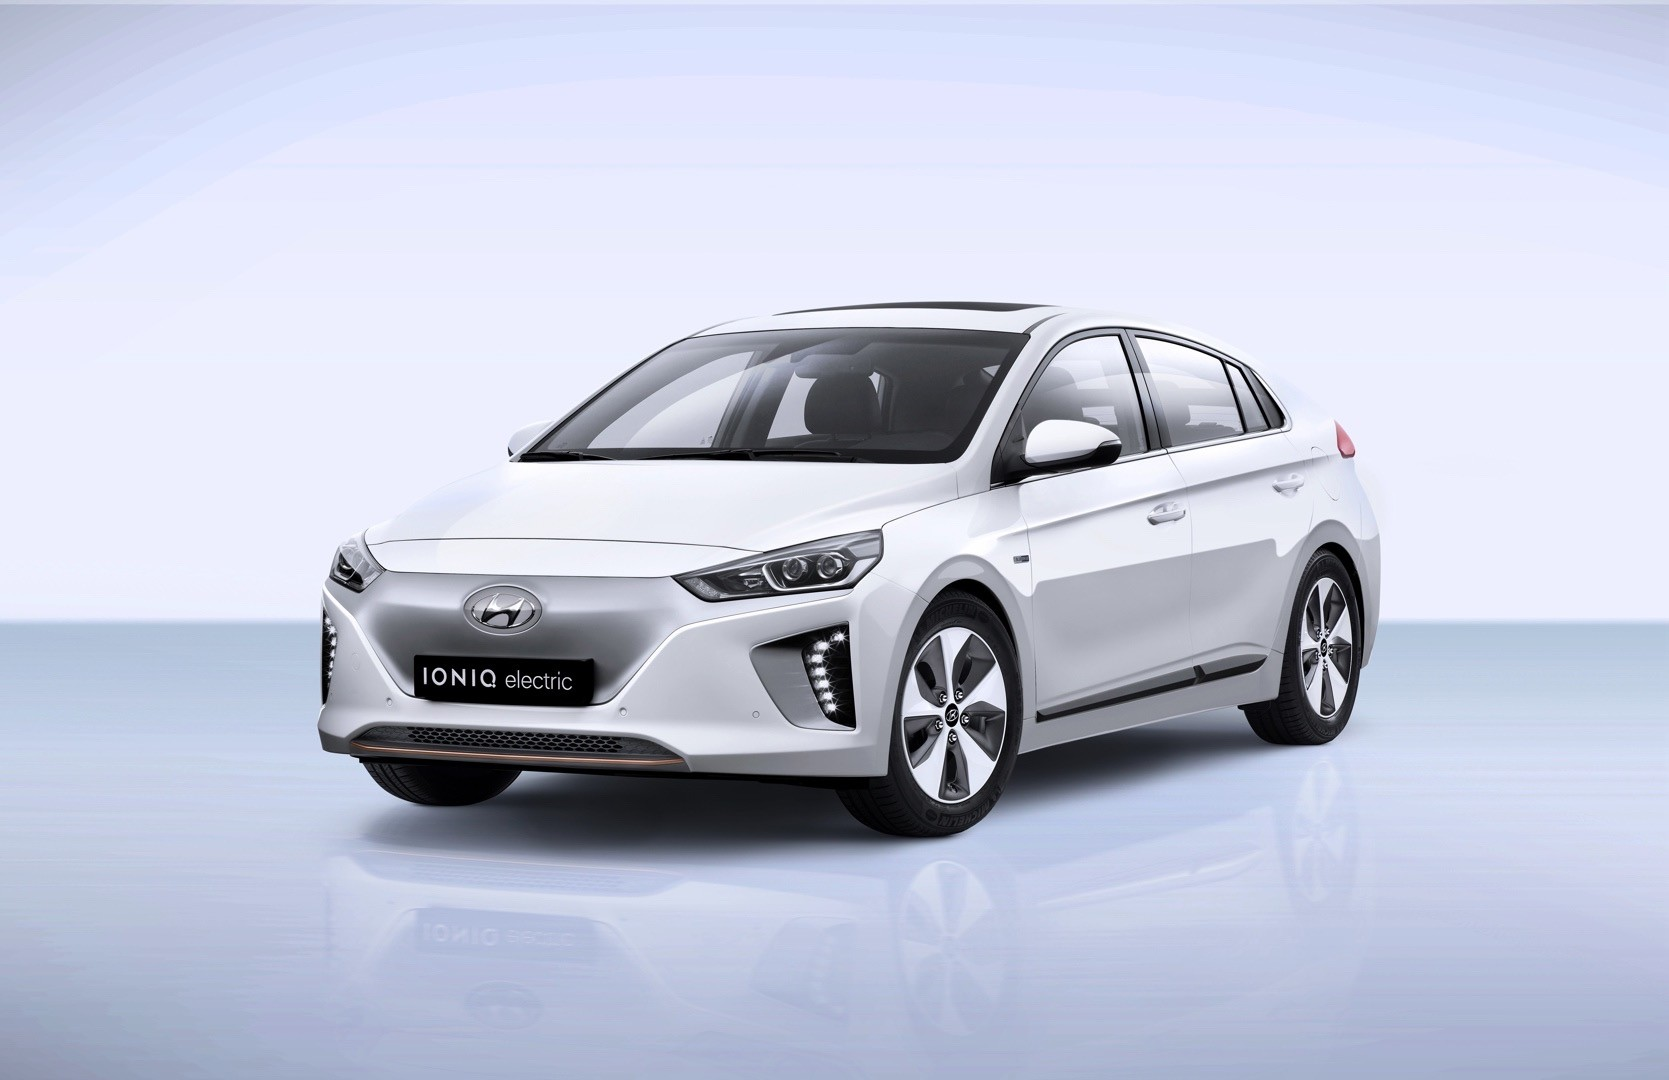 2017 hyundai ioniq electric priced in the uk from 24 495. Black Bedroom Furniture Sets. Home Design Ideas